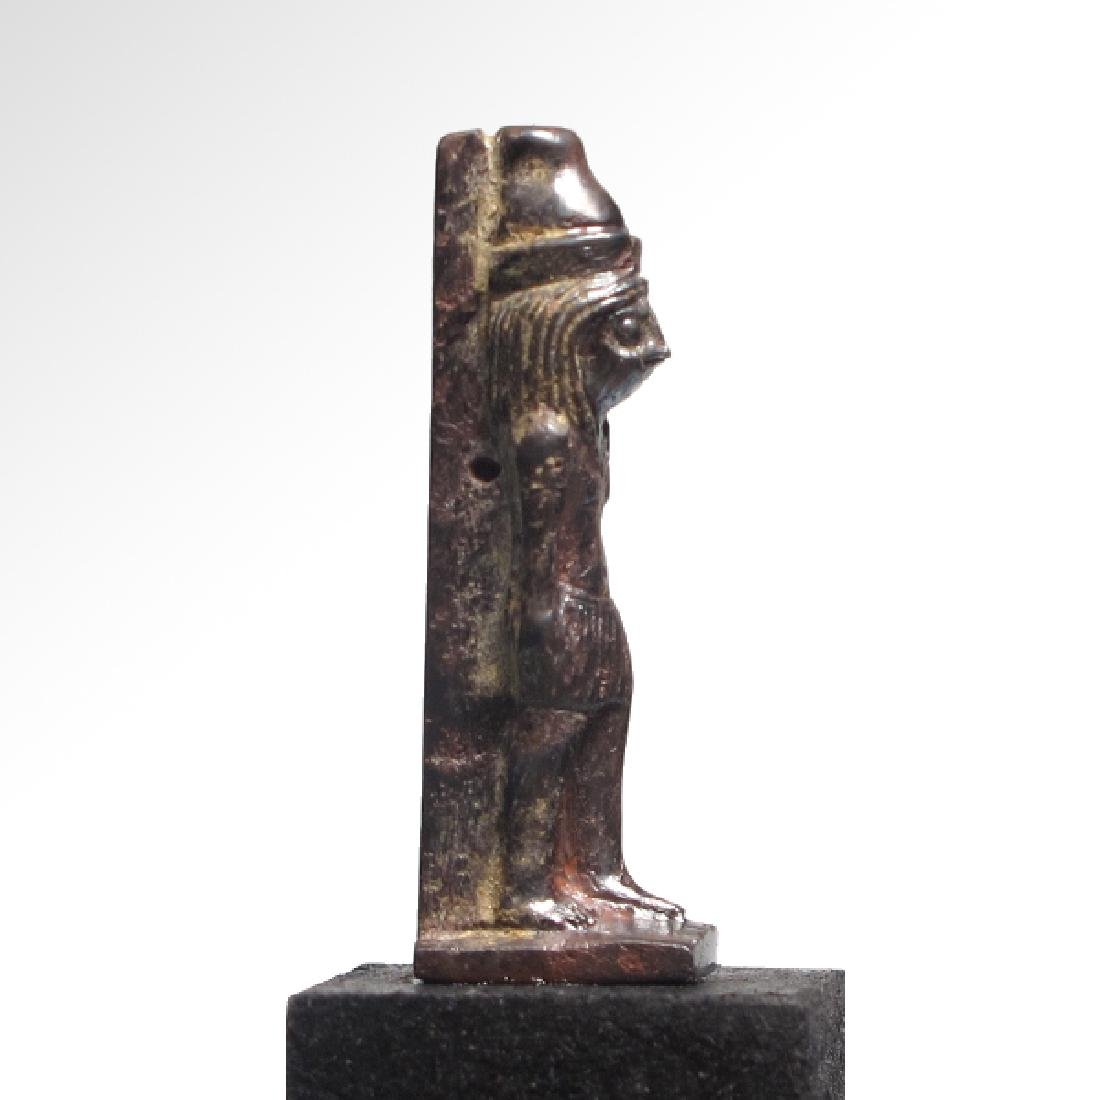 Egyptian Hematite Amulet of the Standing Falcon-Headed - 4